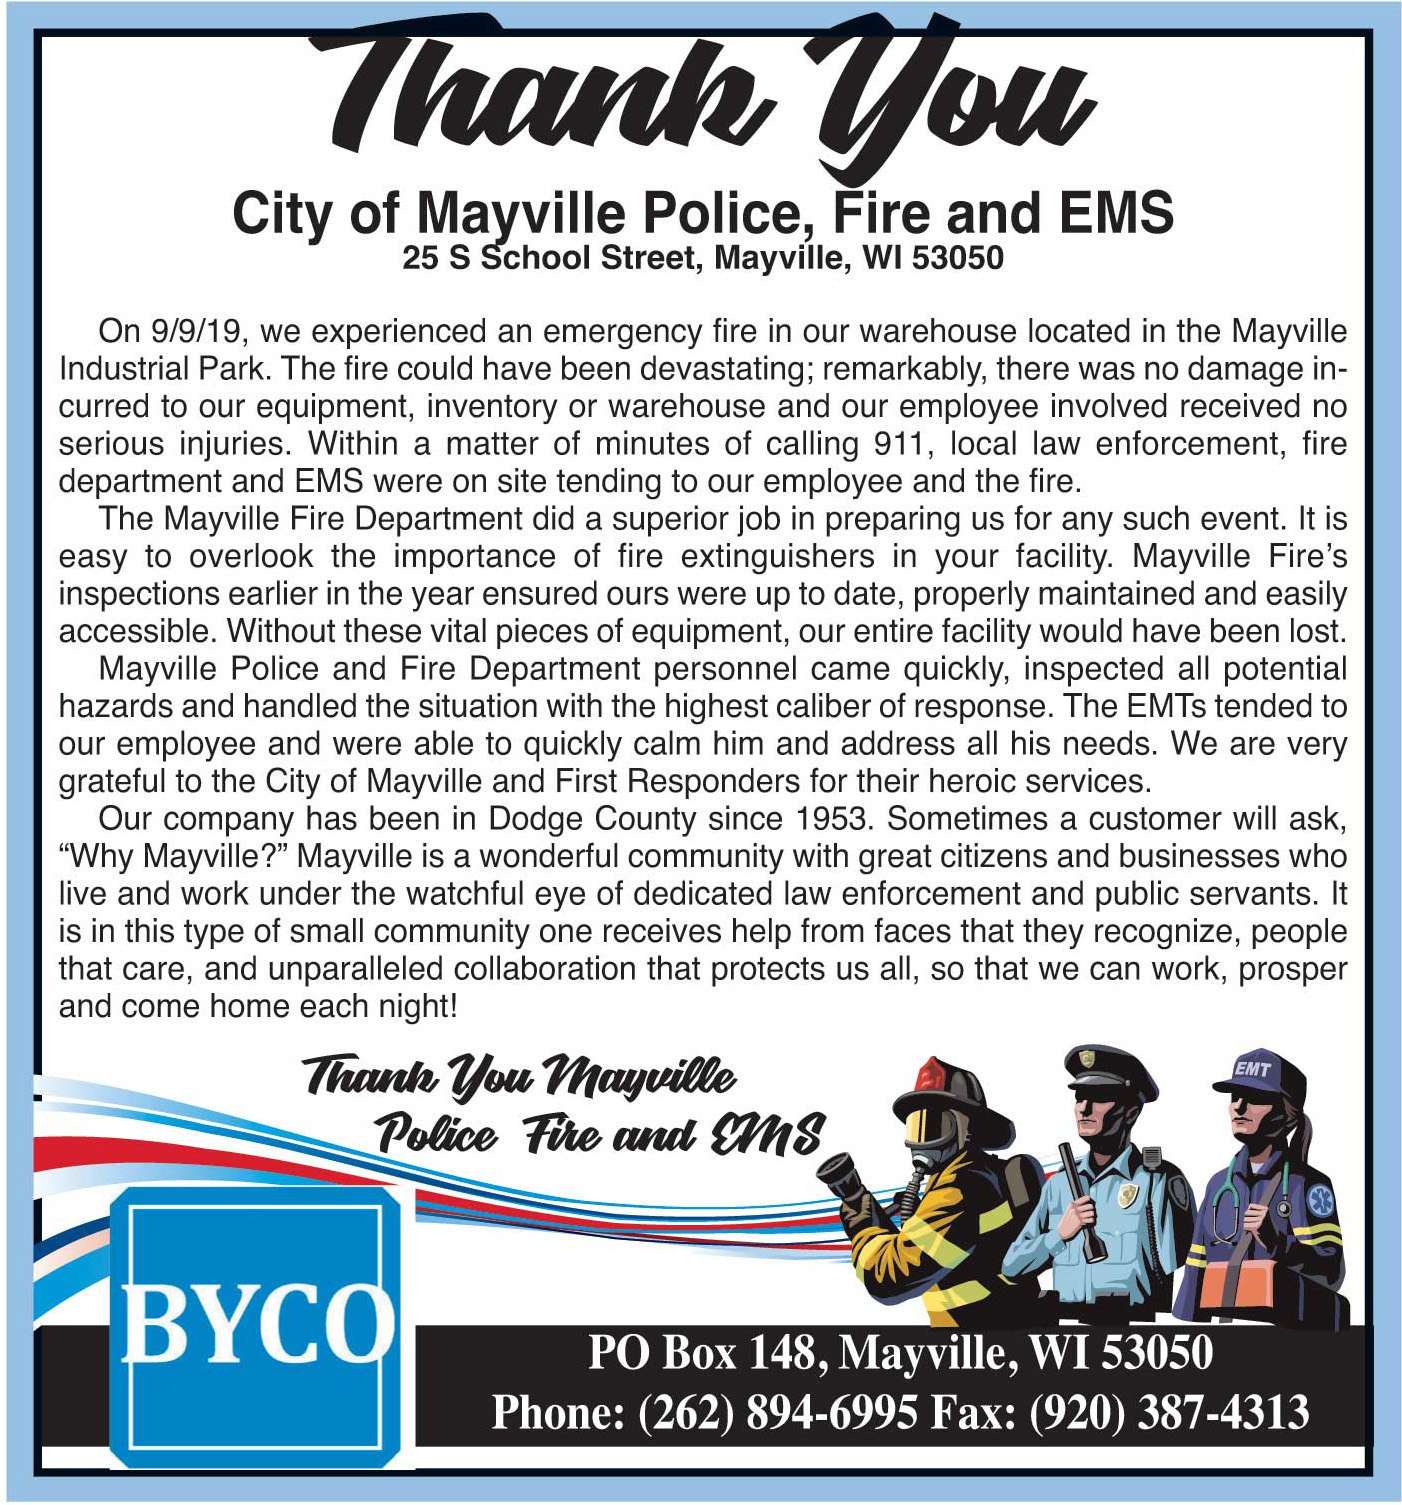 Byco Thank you